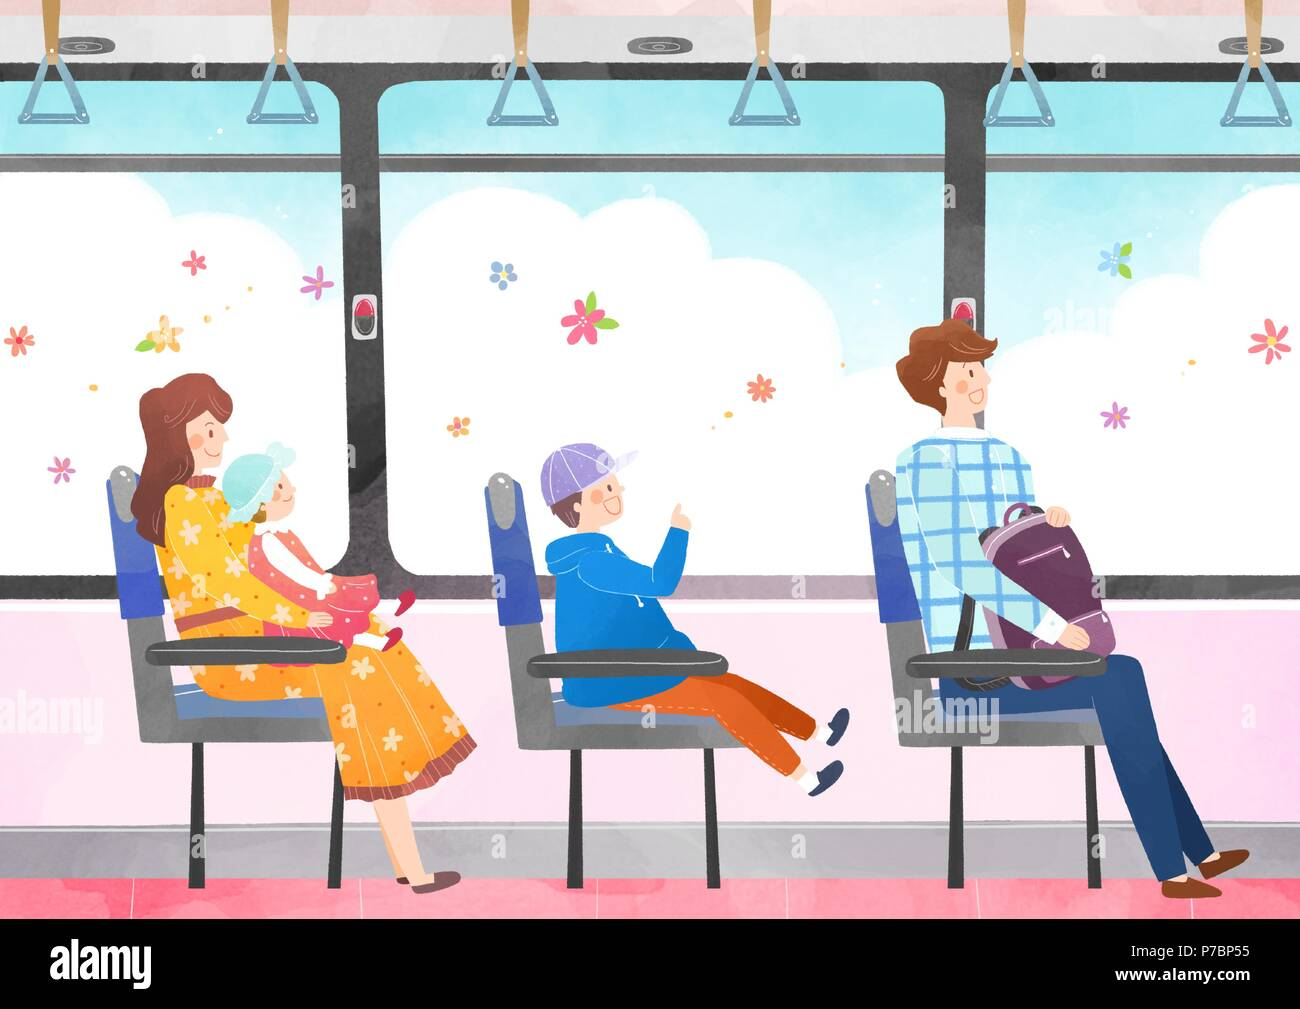 Vector - Go out to the beautiful spring season with family or lover illustration 002 - Stock Vector